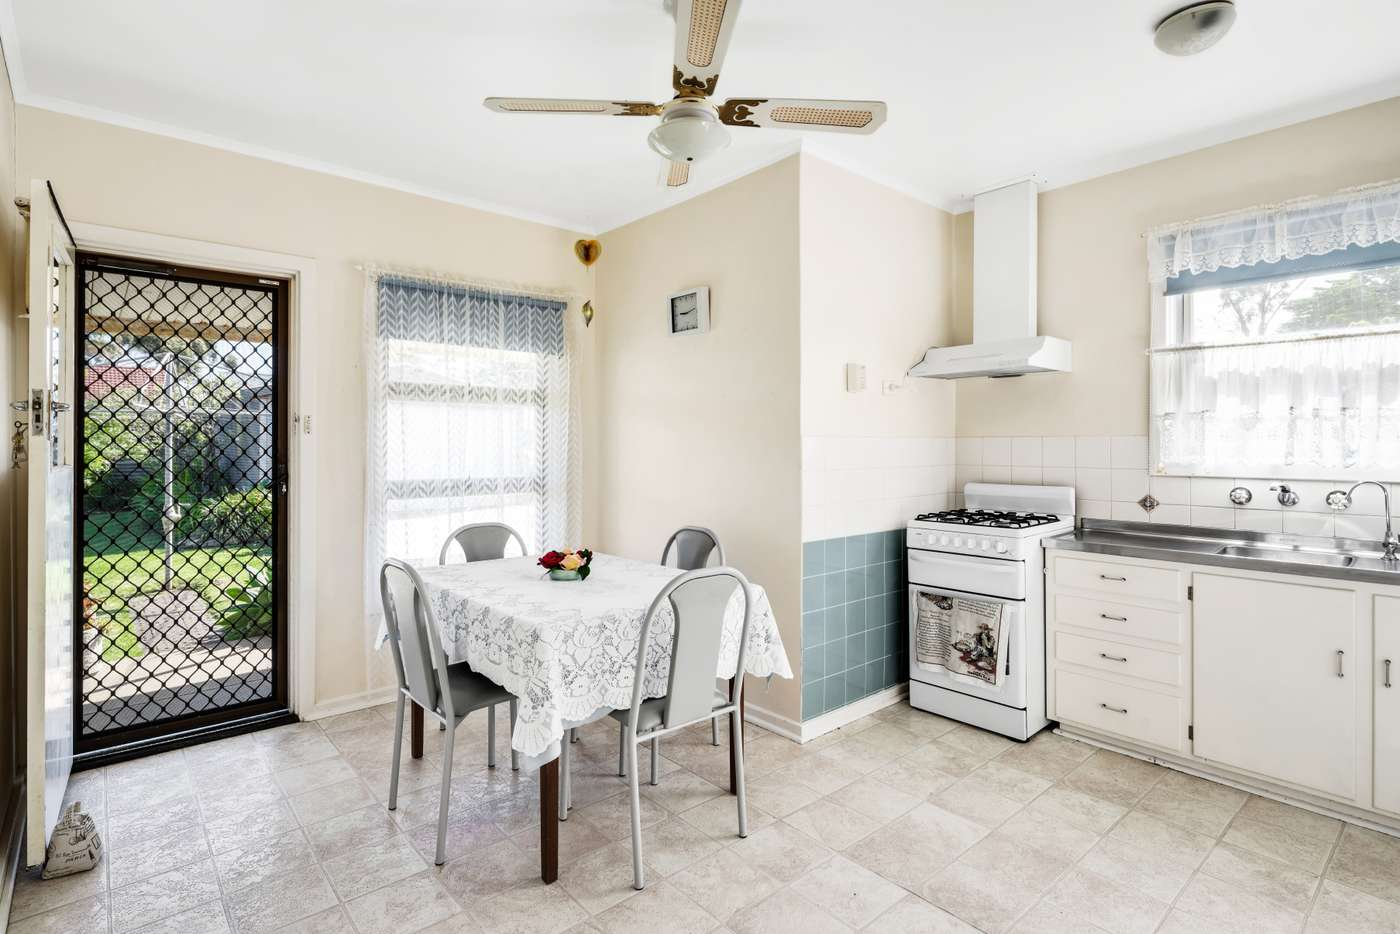 Sixth view of Homely house listing, 15 Kenney Street, Christies Beach SA 5165